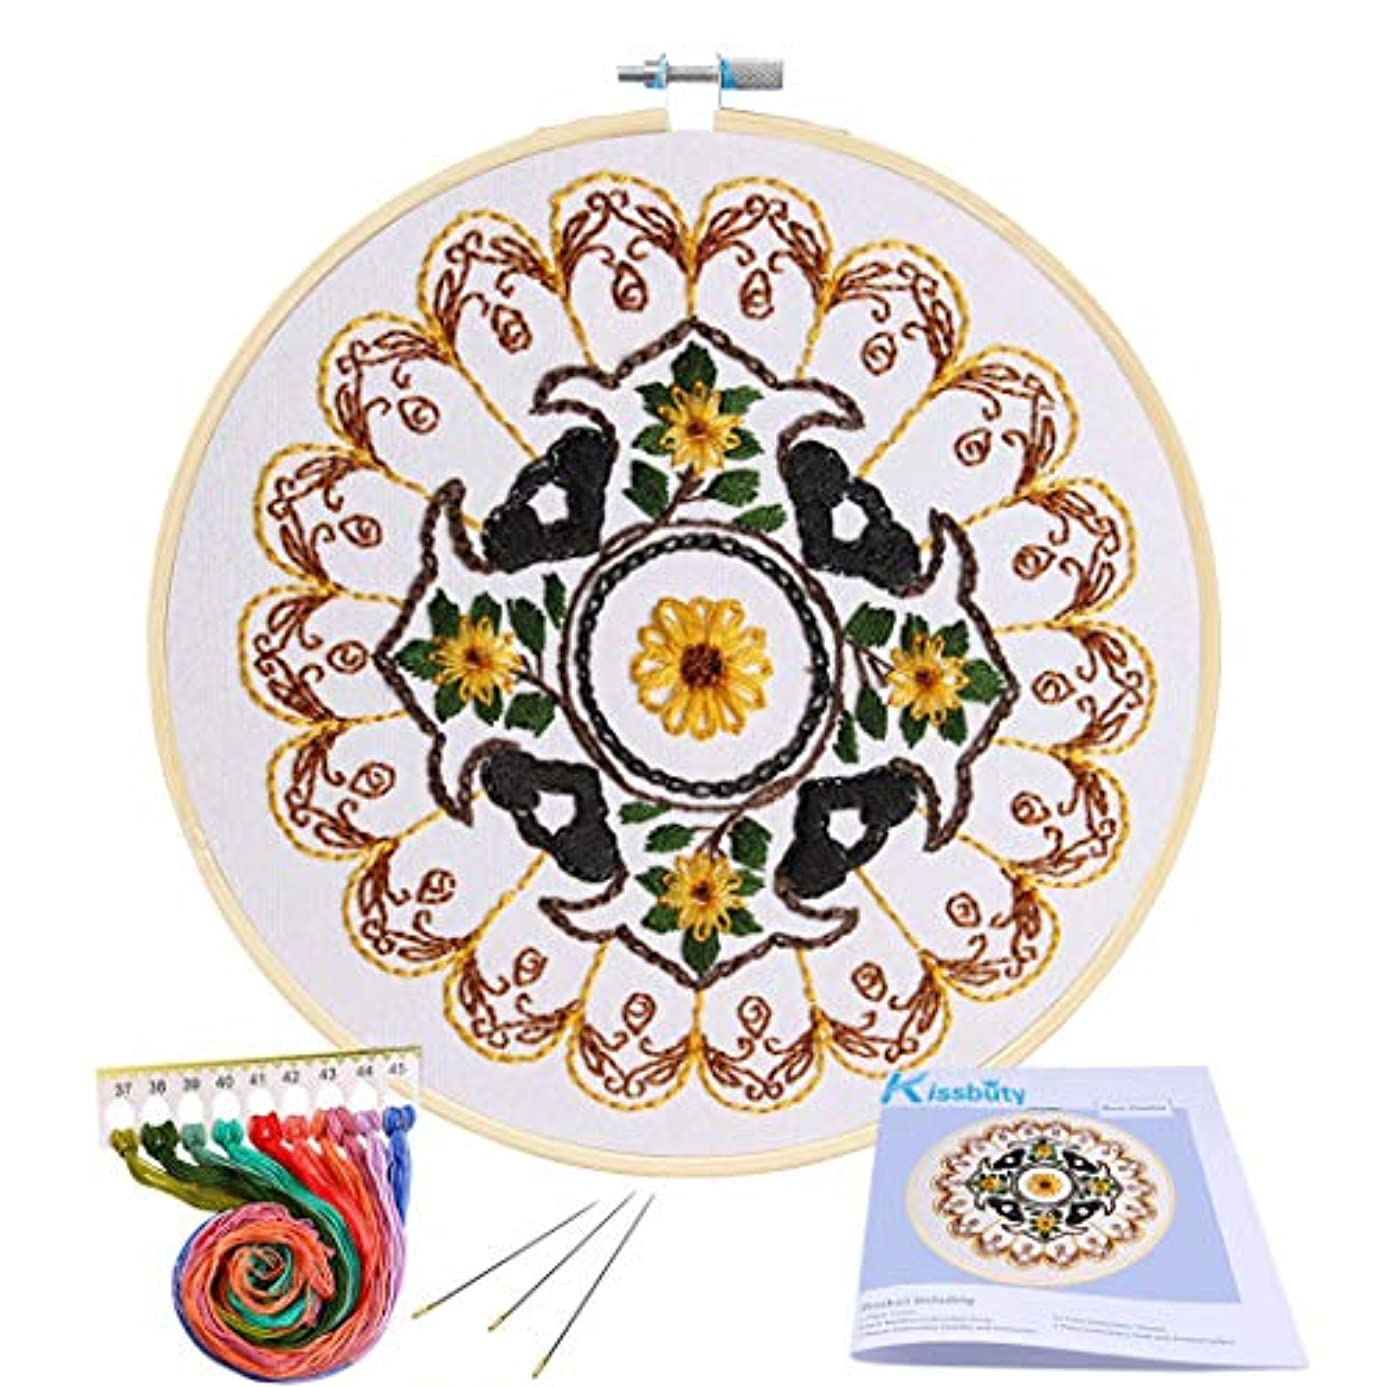 Full Range of Embroidery Starter Kit with Pattern, Kissbuty Cross Stitch Kit Including Embroidery Cloth with Floral Pattern, Bamboo Embroidery Hoop, Color Threads and Tools Kit (Yellow Mandala)